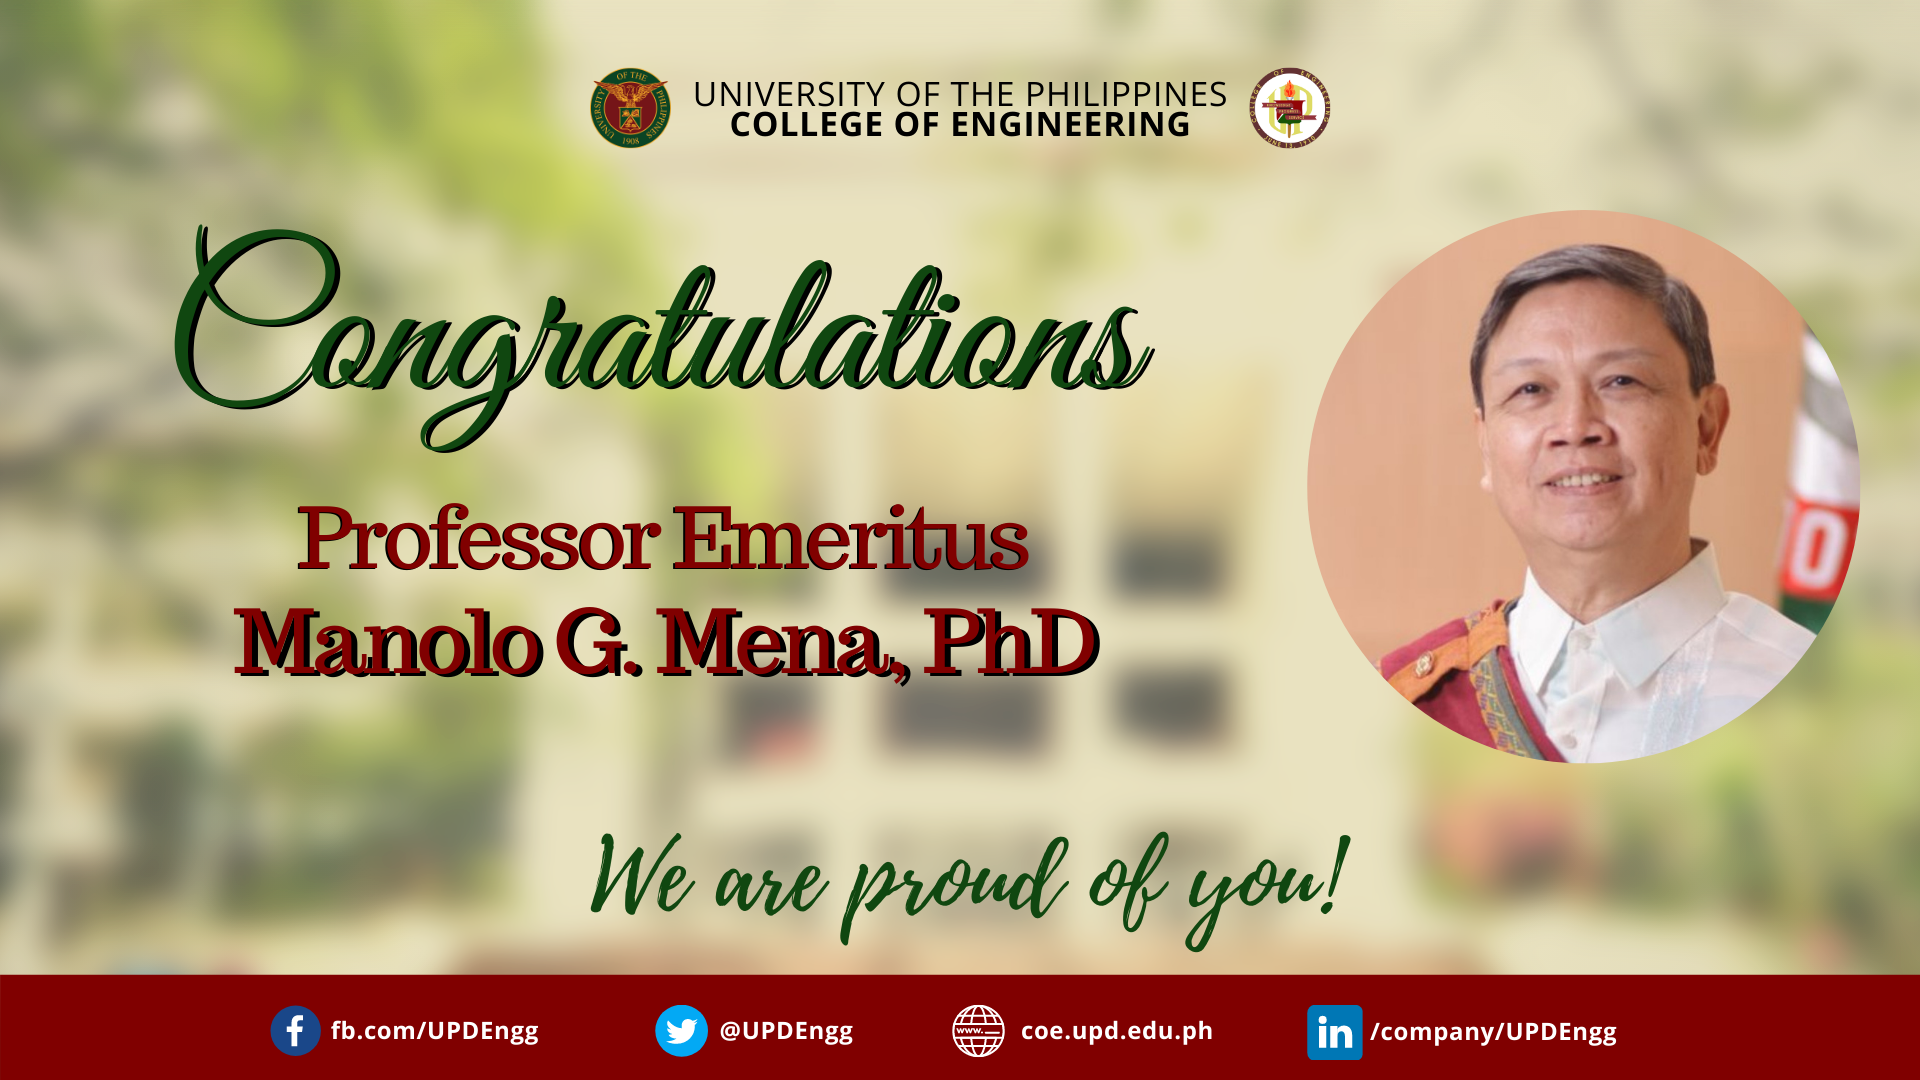 Manolo G. Mena, PhD is the newest Professor Emeritus of the UP College of Engineering